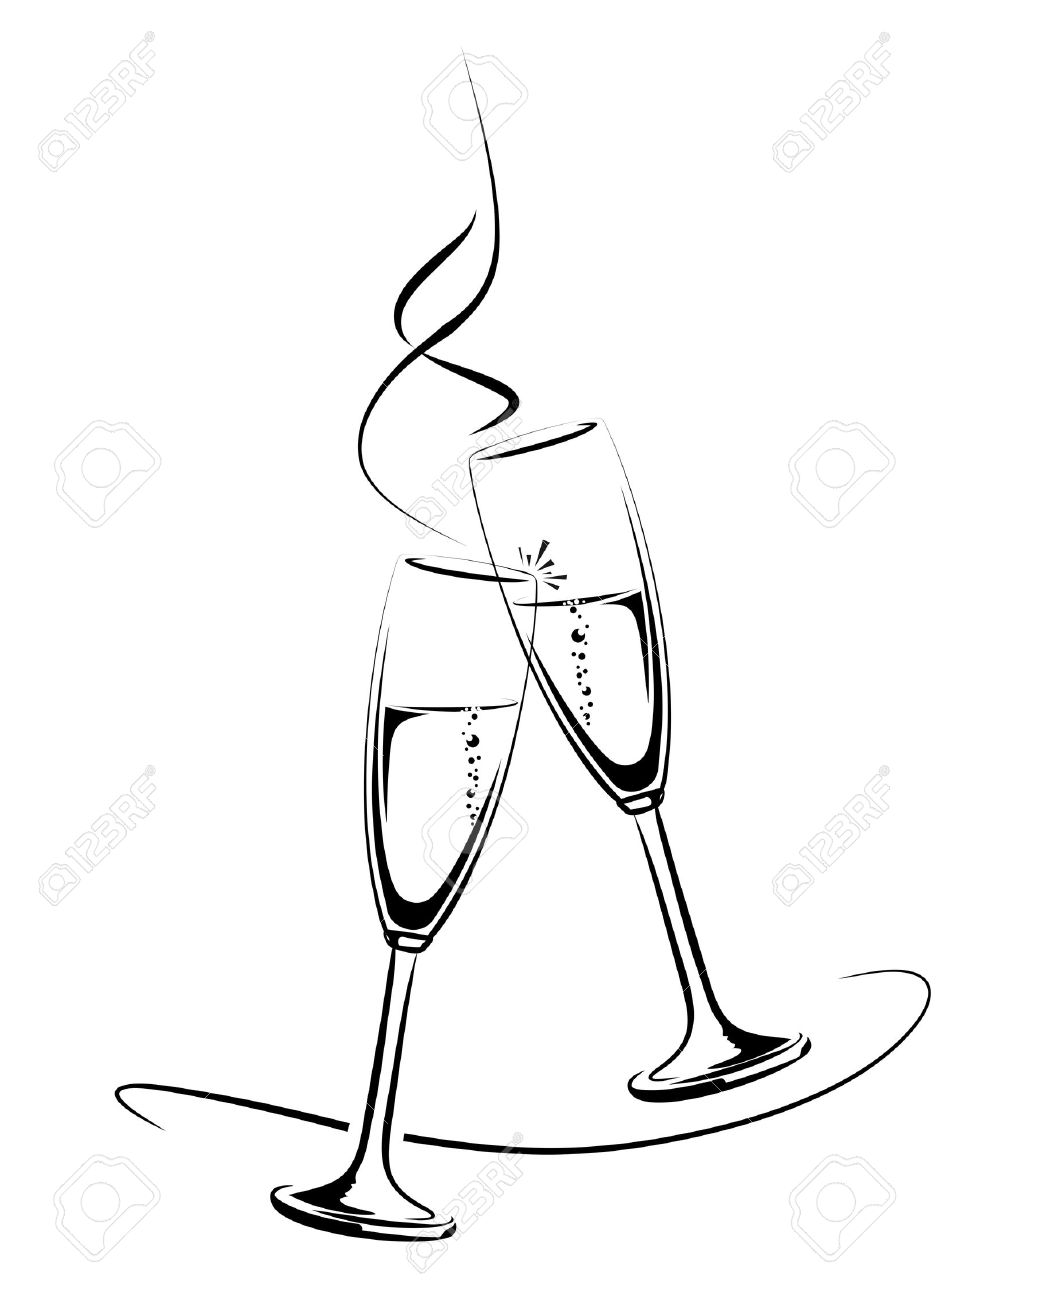 Champagne Glass Drawing_